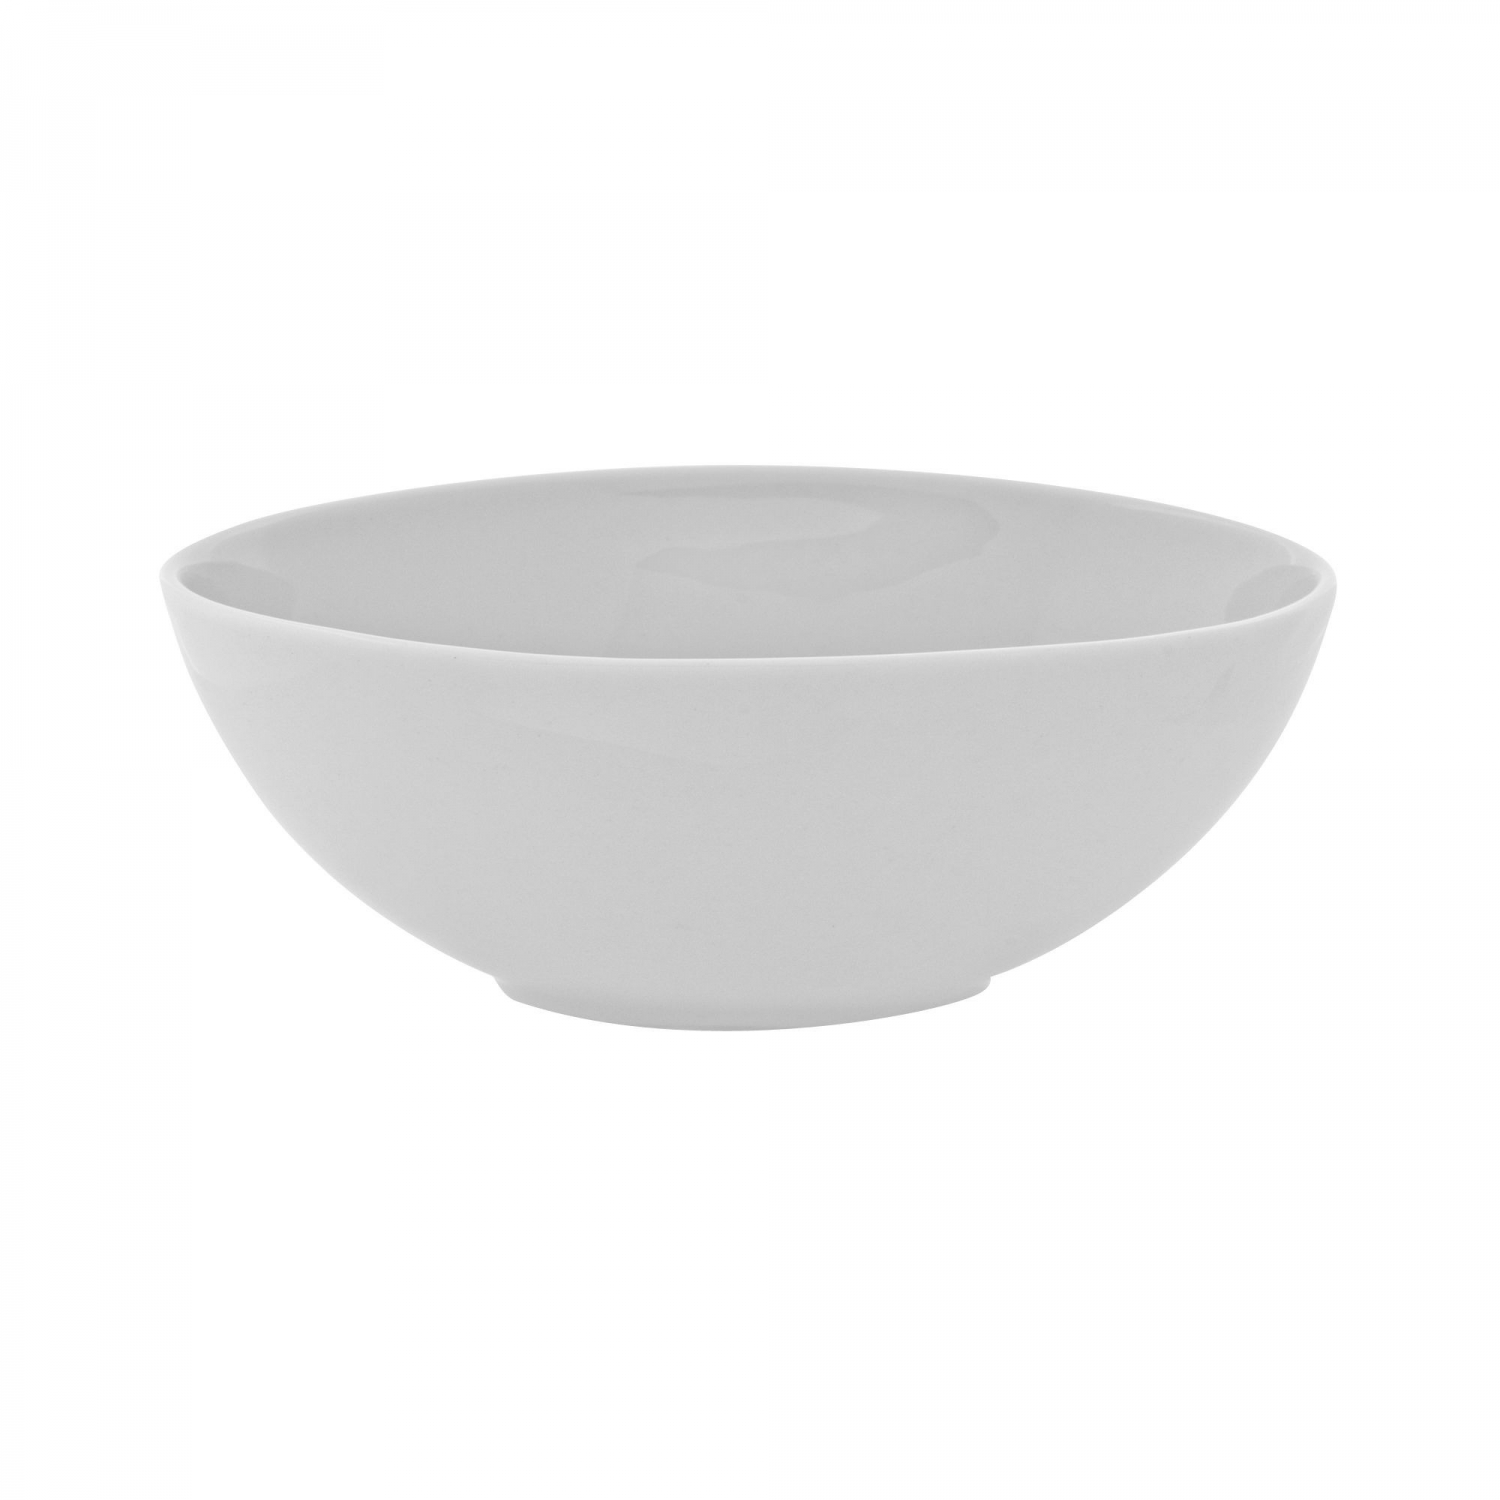 10 Strawberry Street RVL0007 Royal Oval White Cereal Bowl 17 oz.